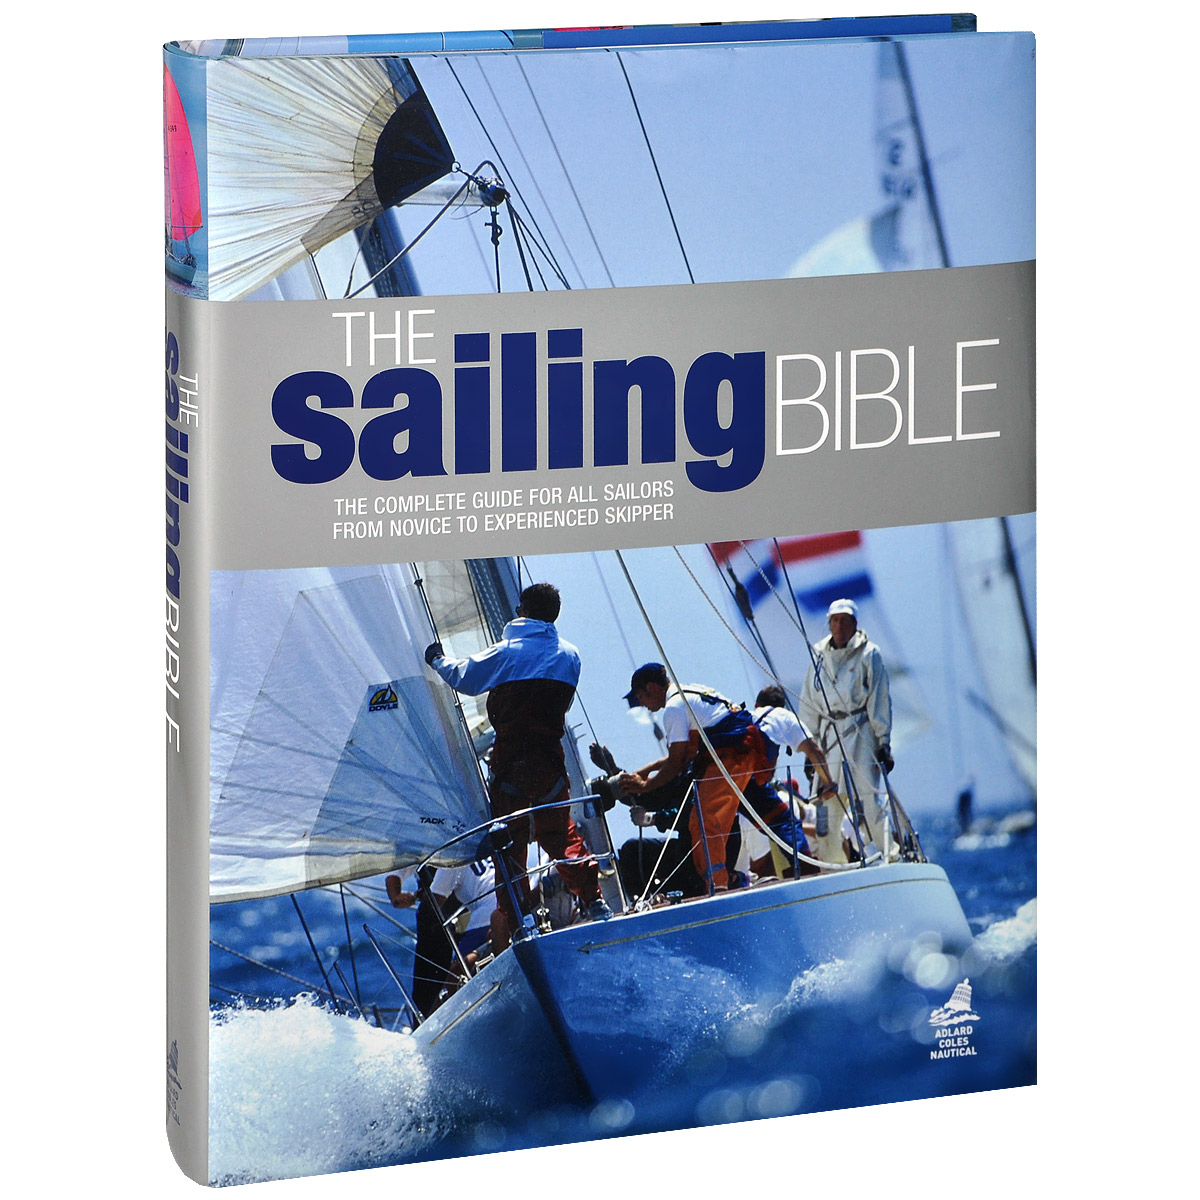 Sailing Bible girl on the boat